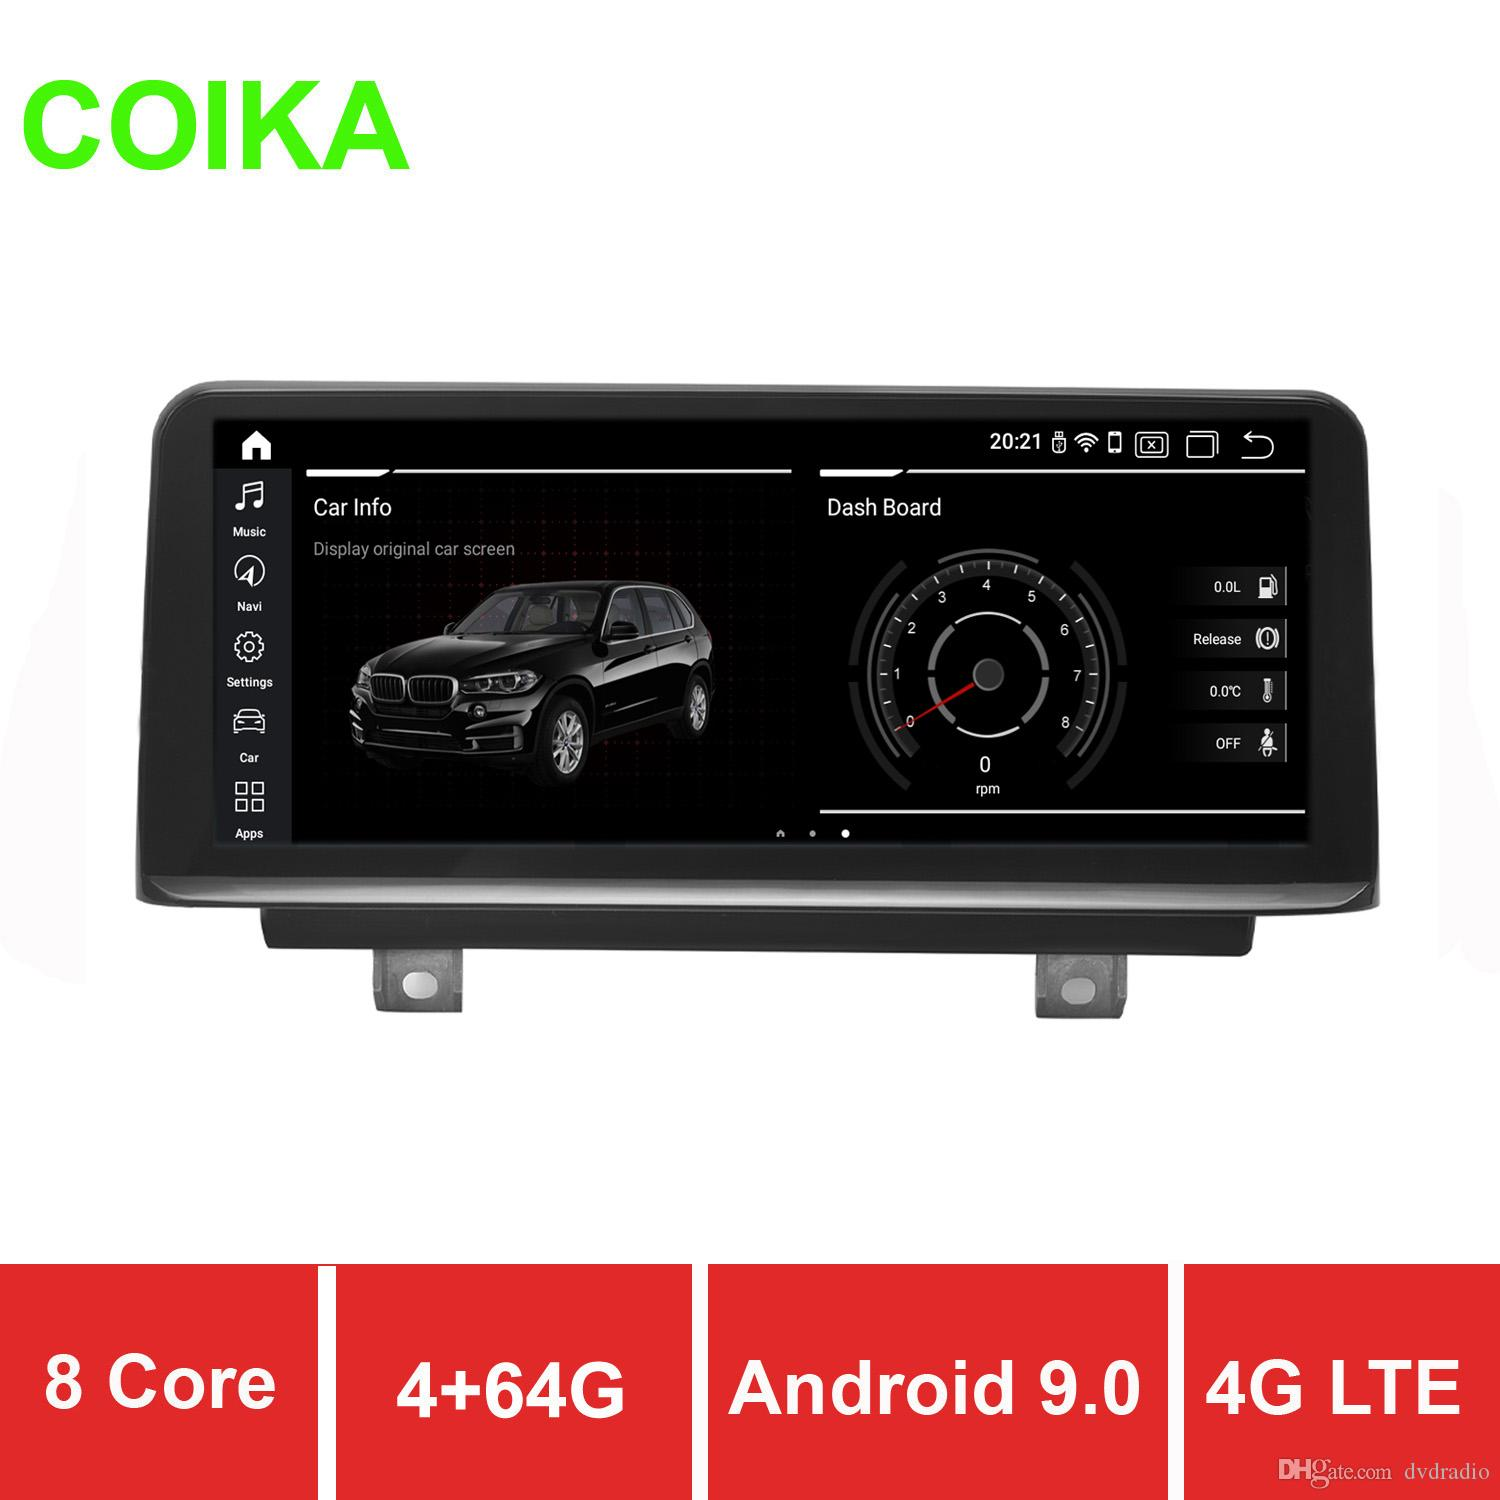 COIKA Car DVD Radio Stereo 8 Core 10.25'' For BMW F20 F21 F23(Cabrio) 13-17 4+64GB RAM WIFI 4G Android 9.0 DSP SWC BT Google Touch Screen